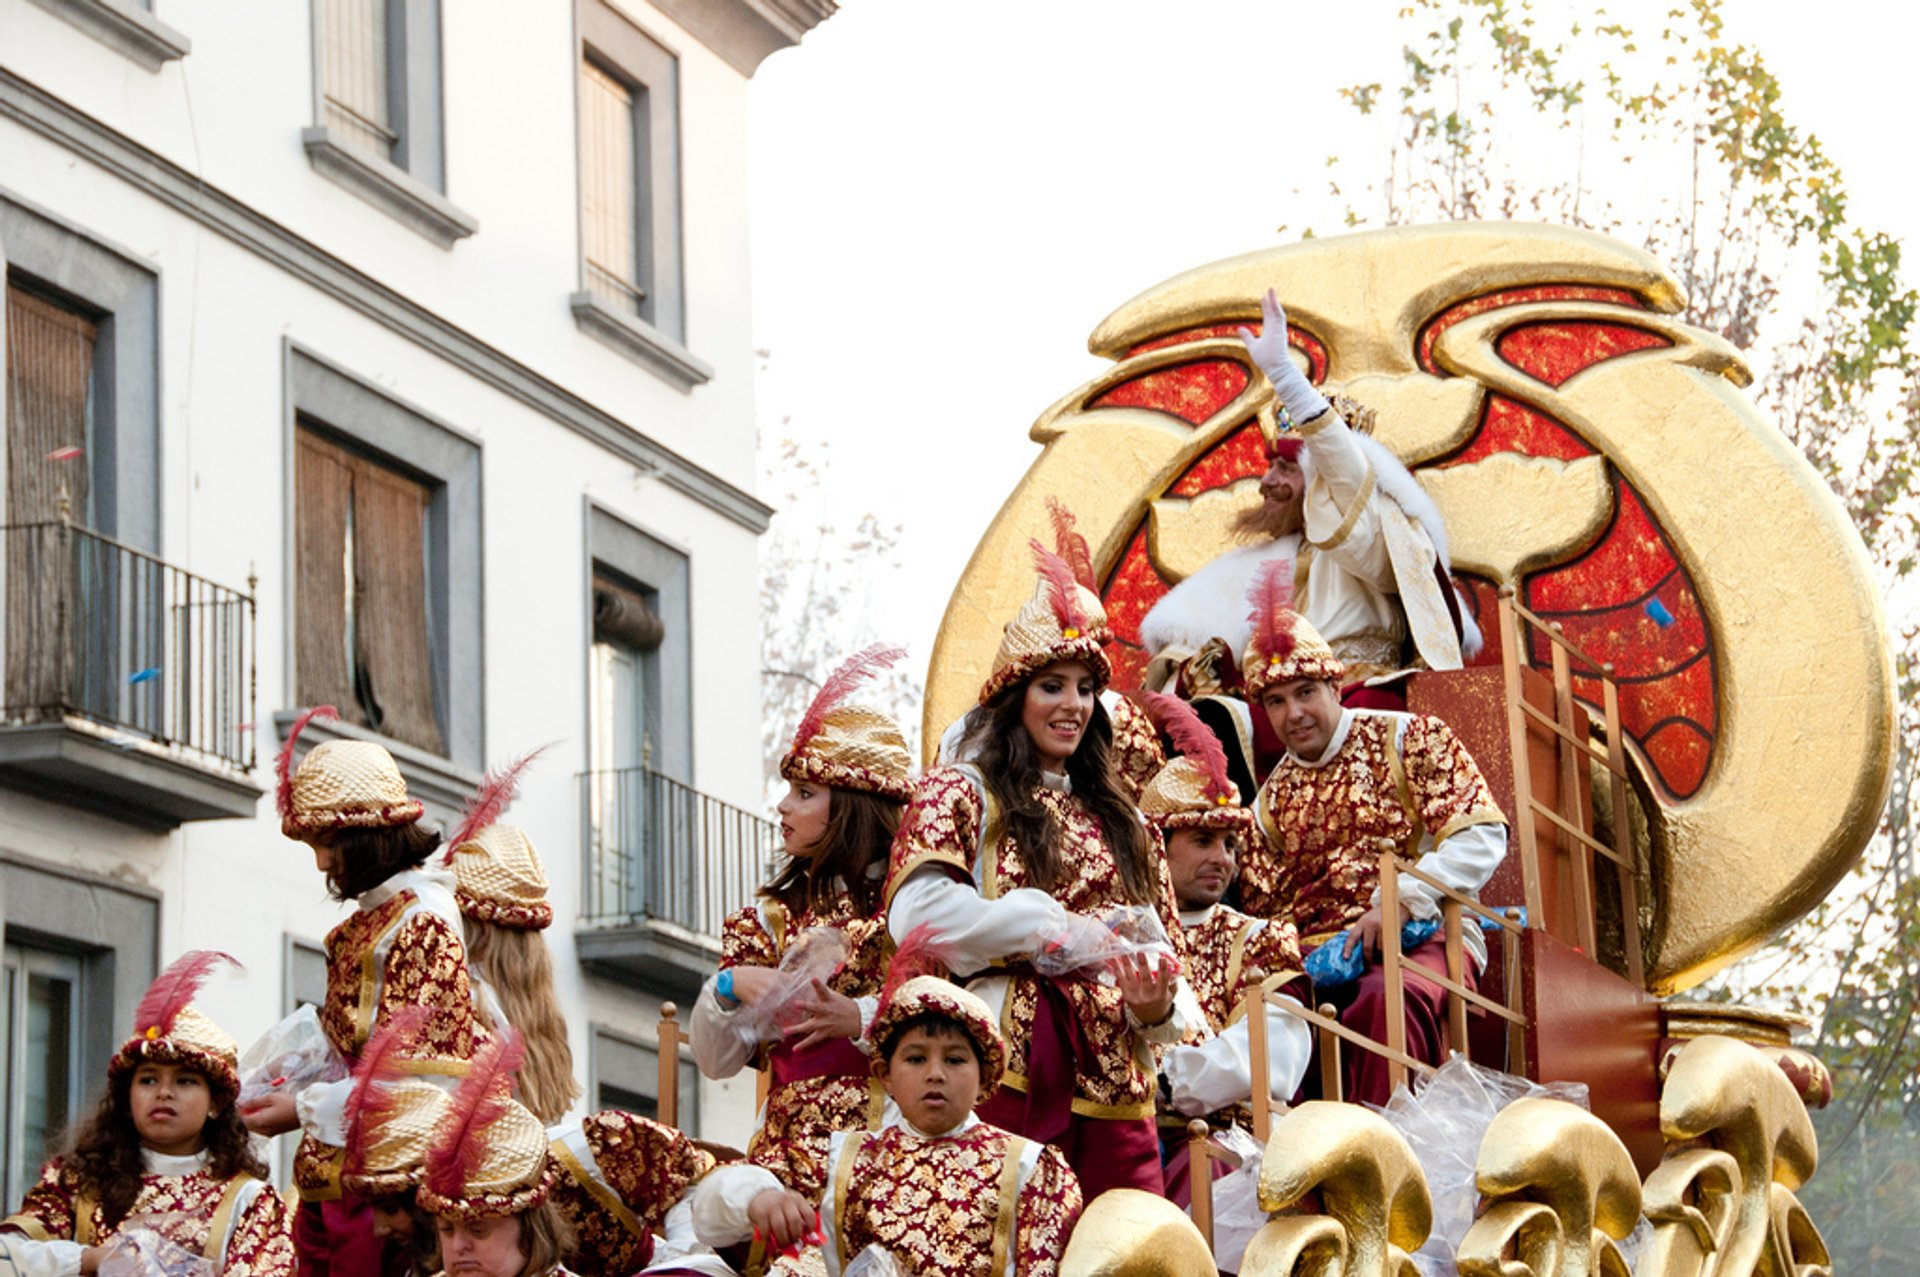 Three Kings Parade (Los Reyes Magos) in Seville - Best Season 2020